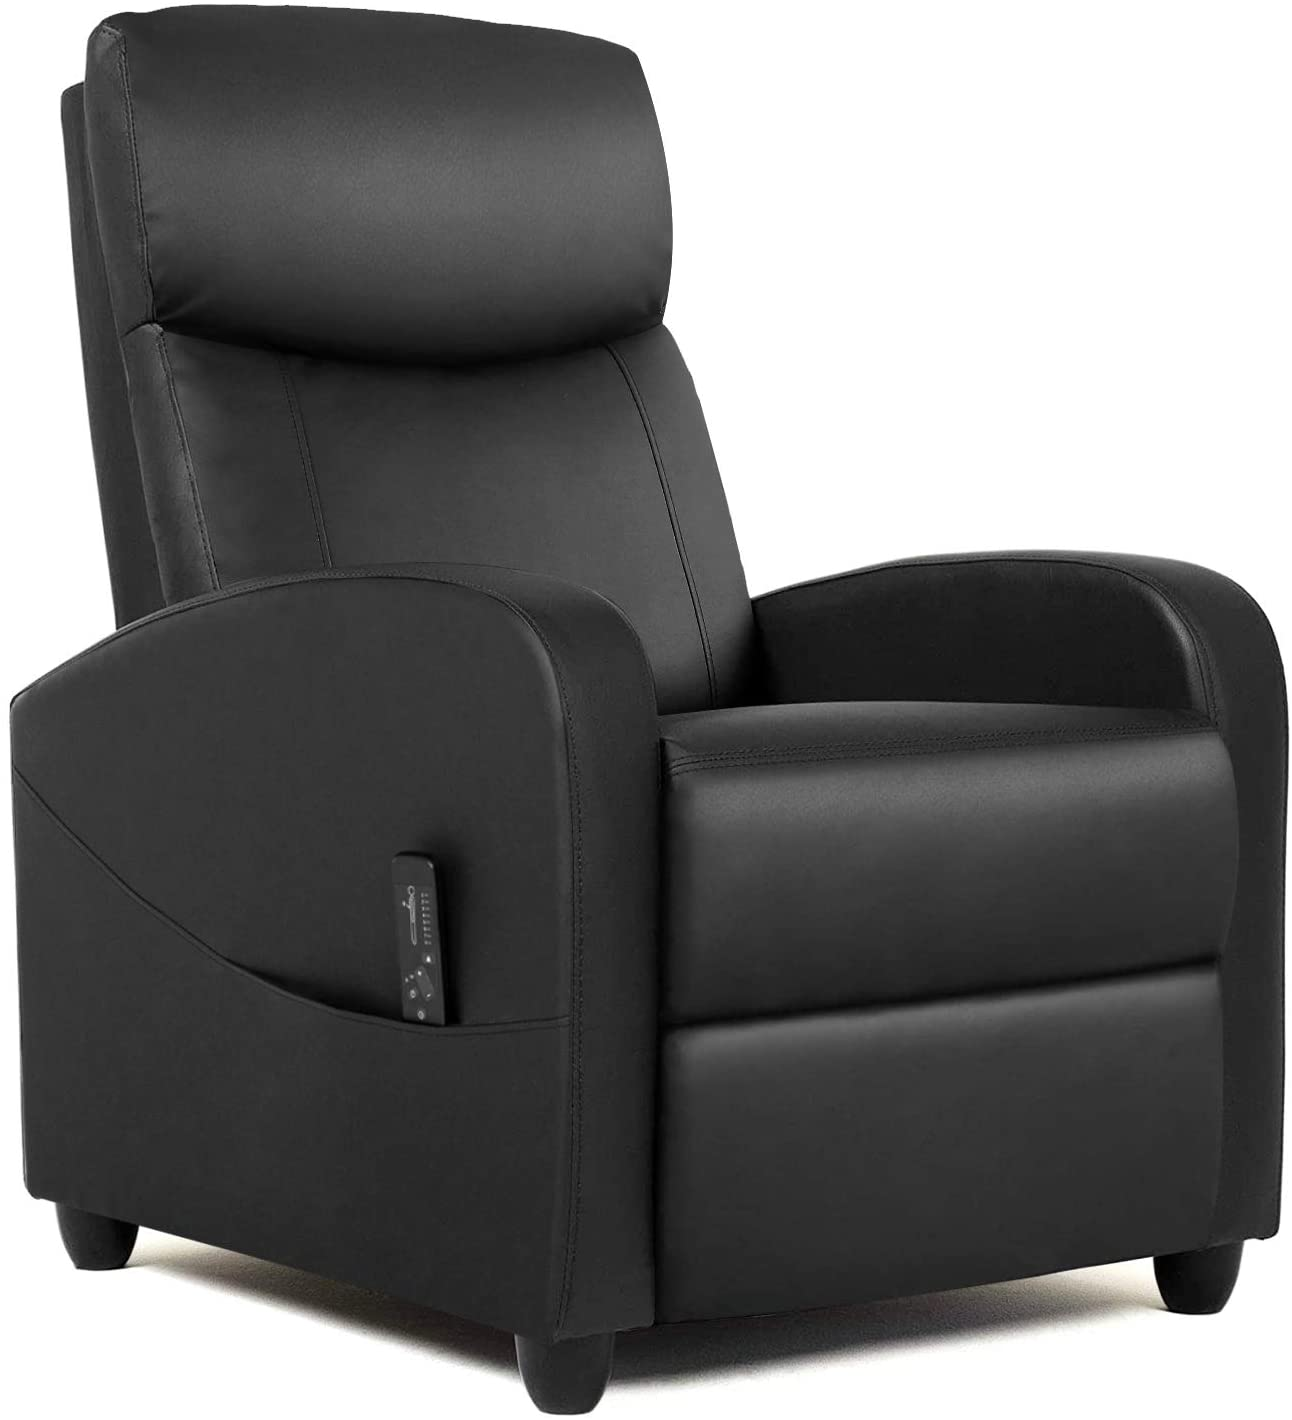 Massage Recliner Chair Living Room Chair Adjustable Home Theater Seating Winback Single Recliner Sofa Chair, Lazy Boy Recliner Padded Seat Pu Leather Push Back Recliners Armchair for Living Room